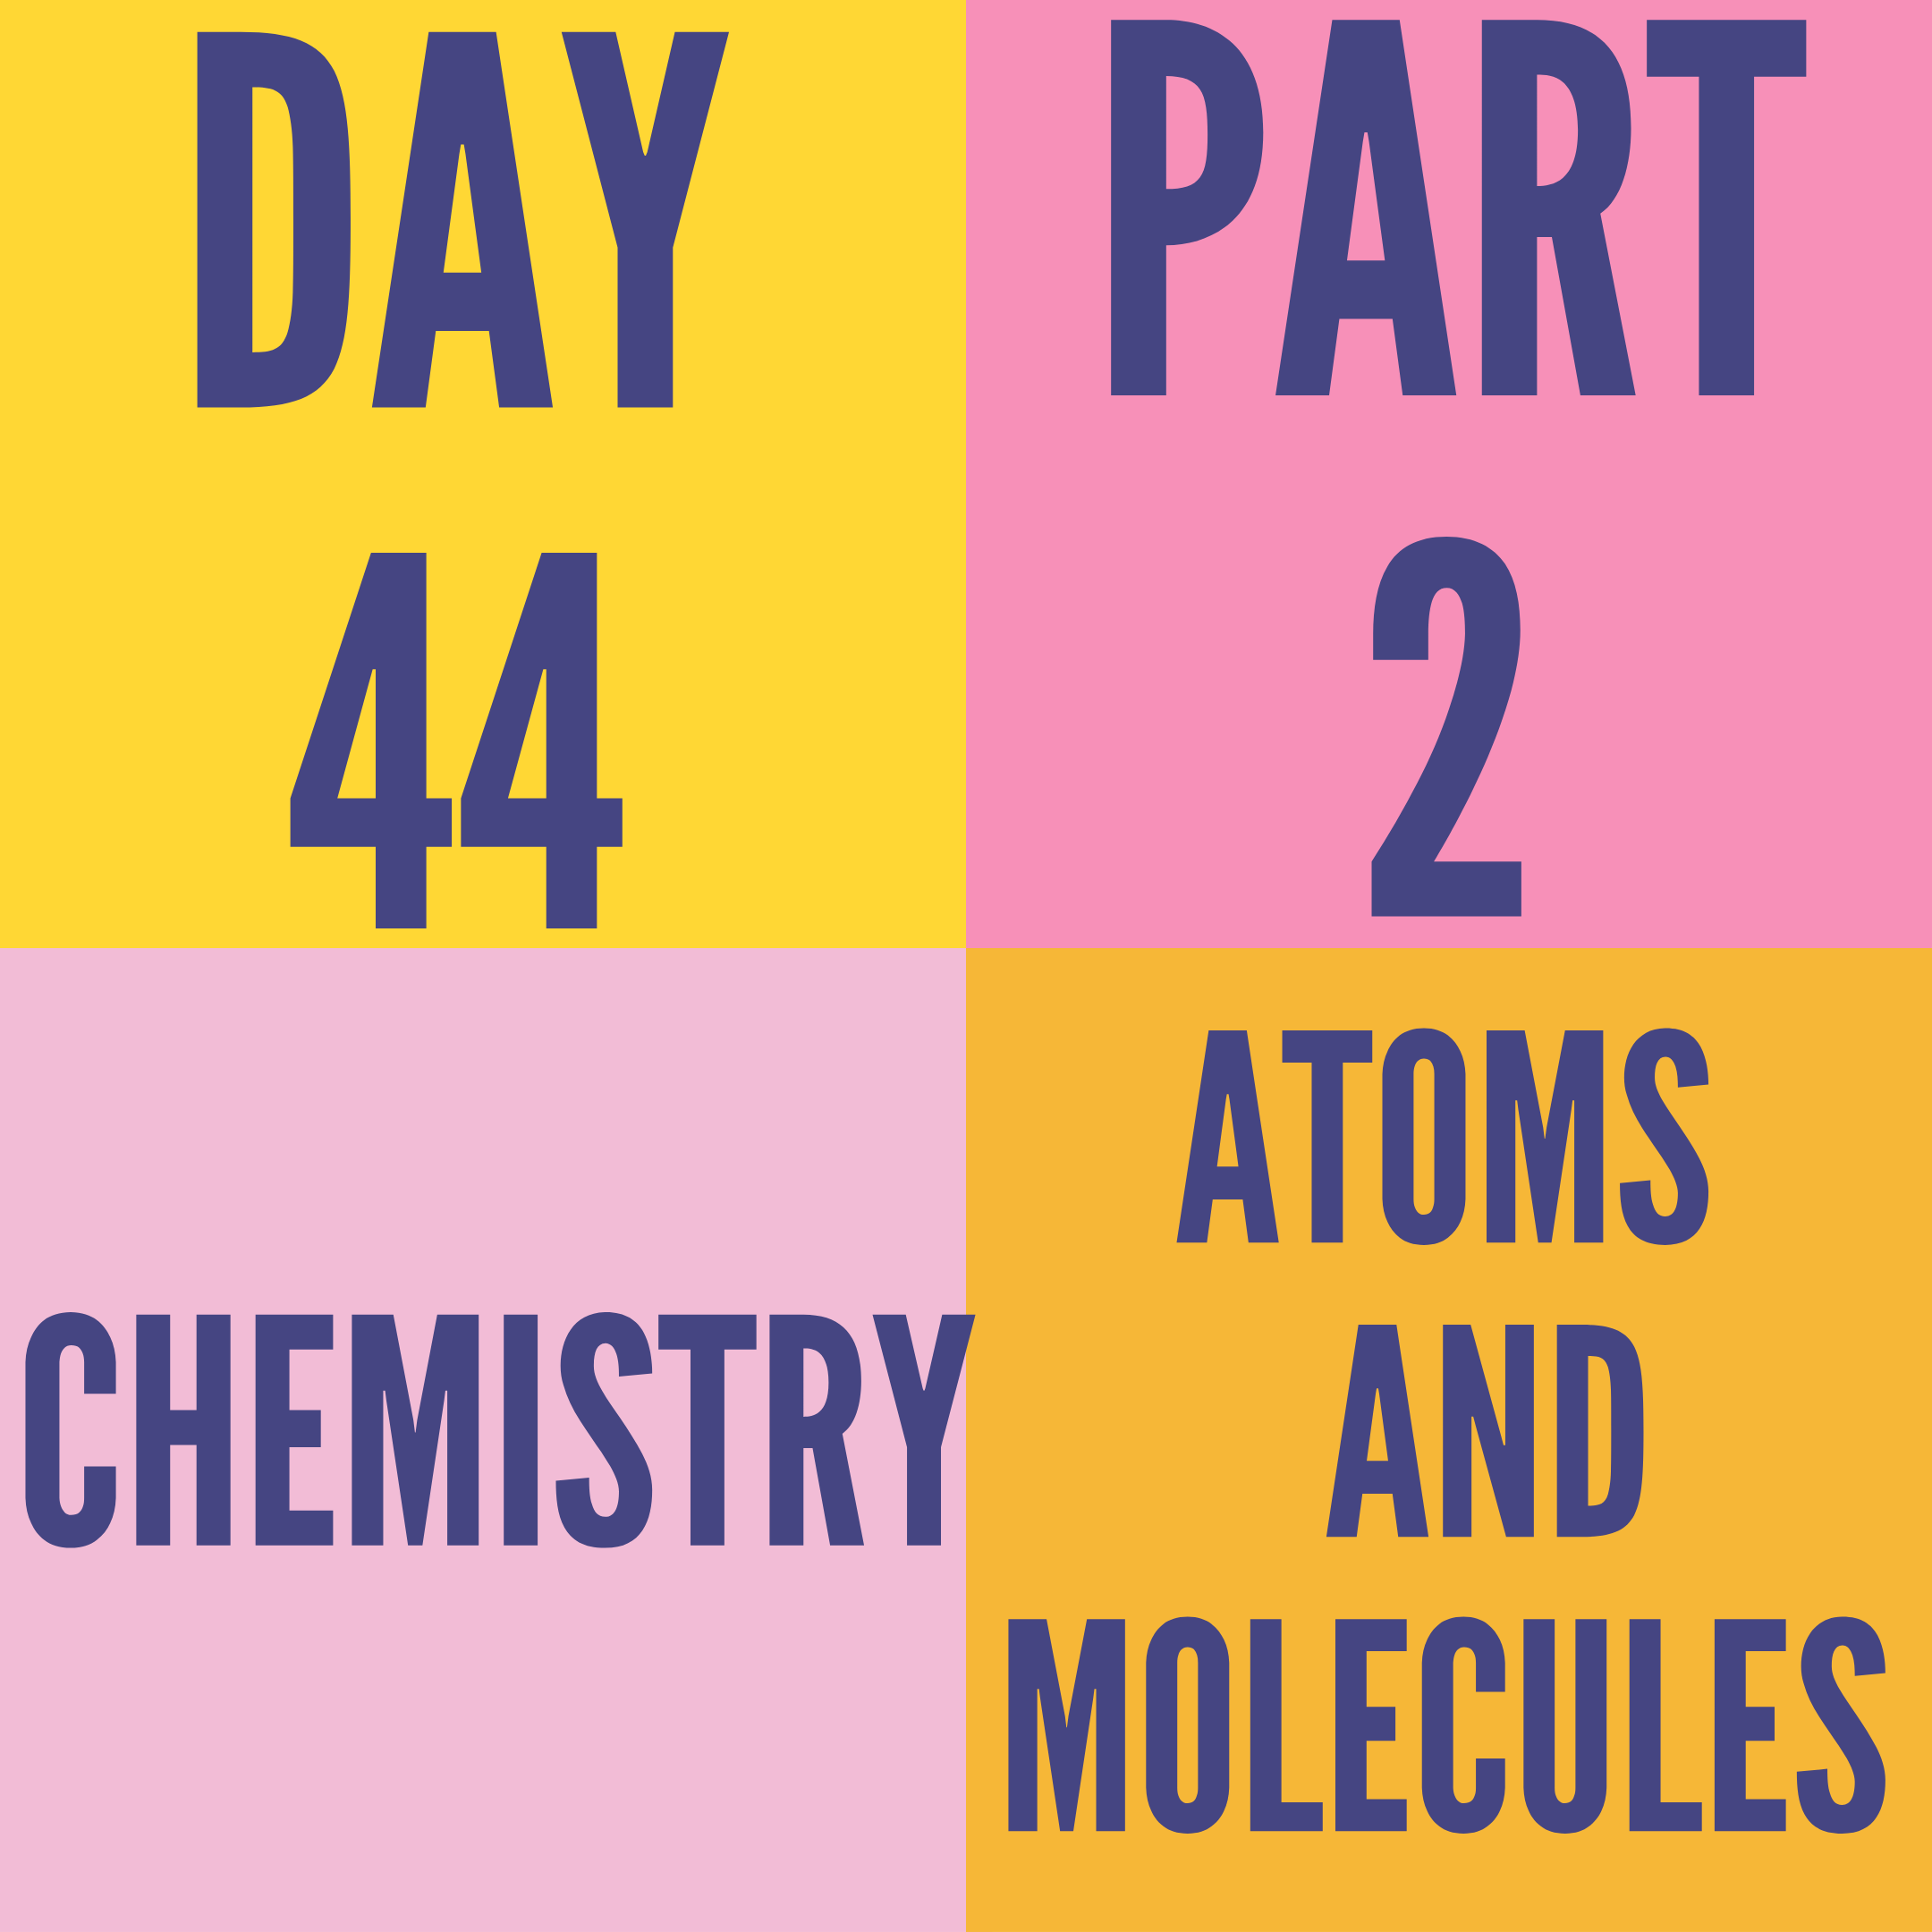 DAY-44 PART-2 ATOMS AND MOLECULES